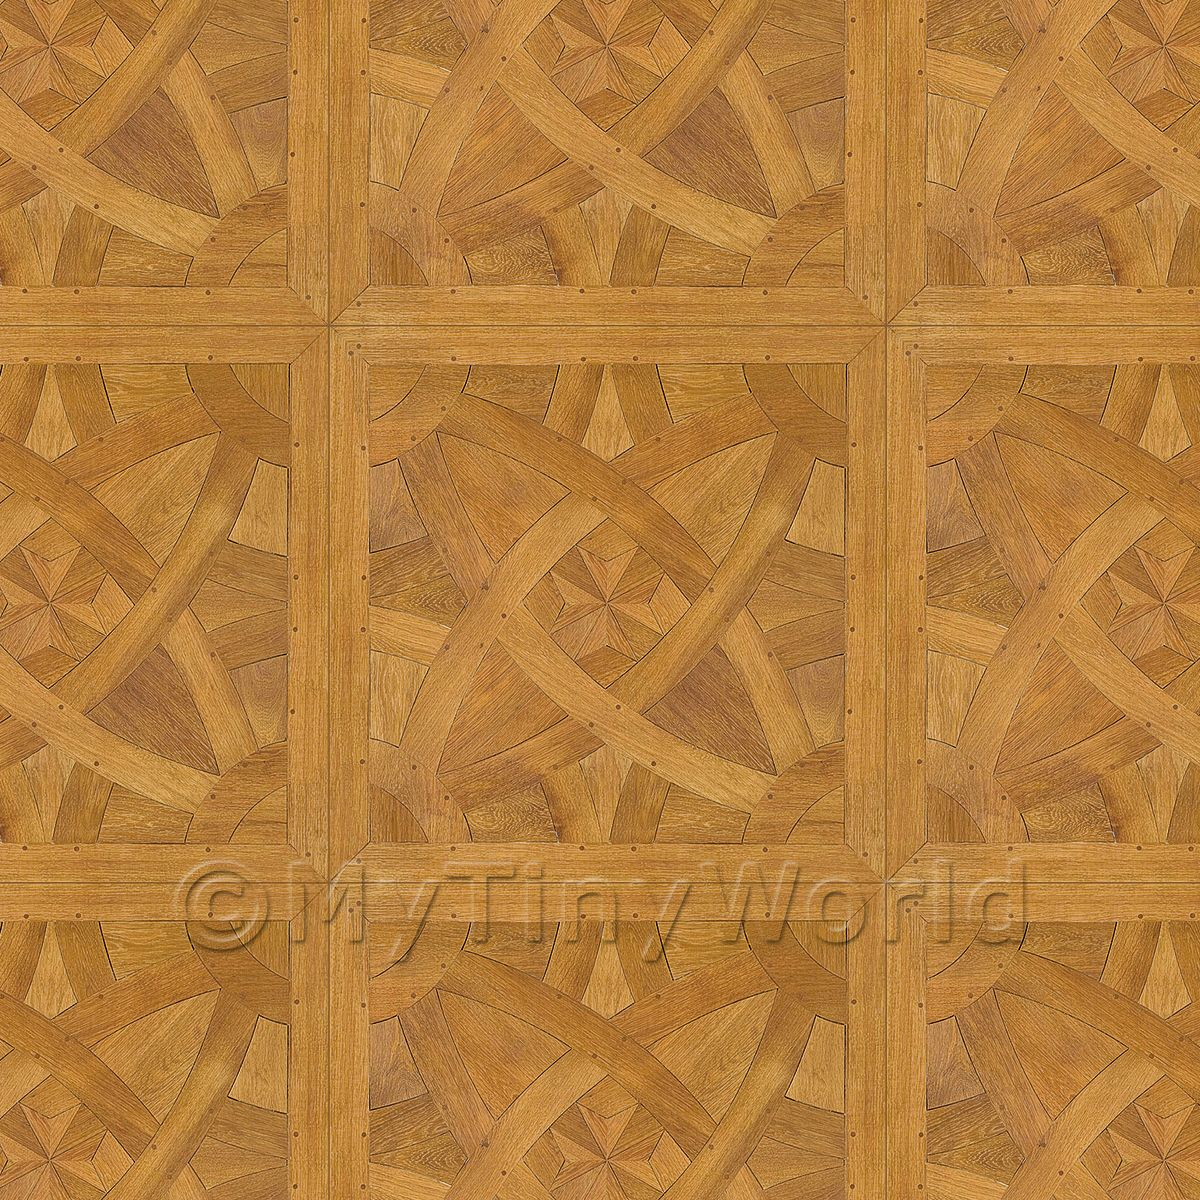 Dolls House La Rochelle Large Panel Parquet Wood Effect Flooring